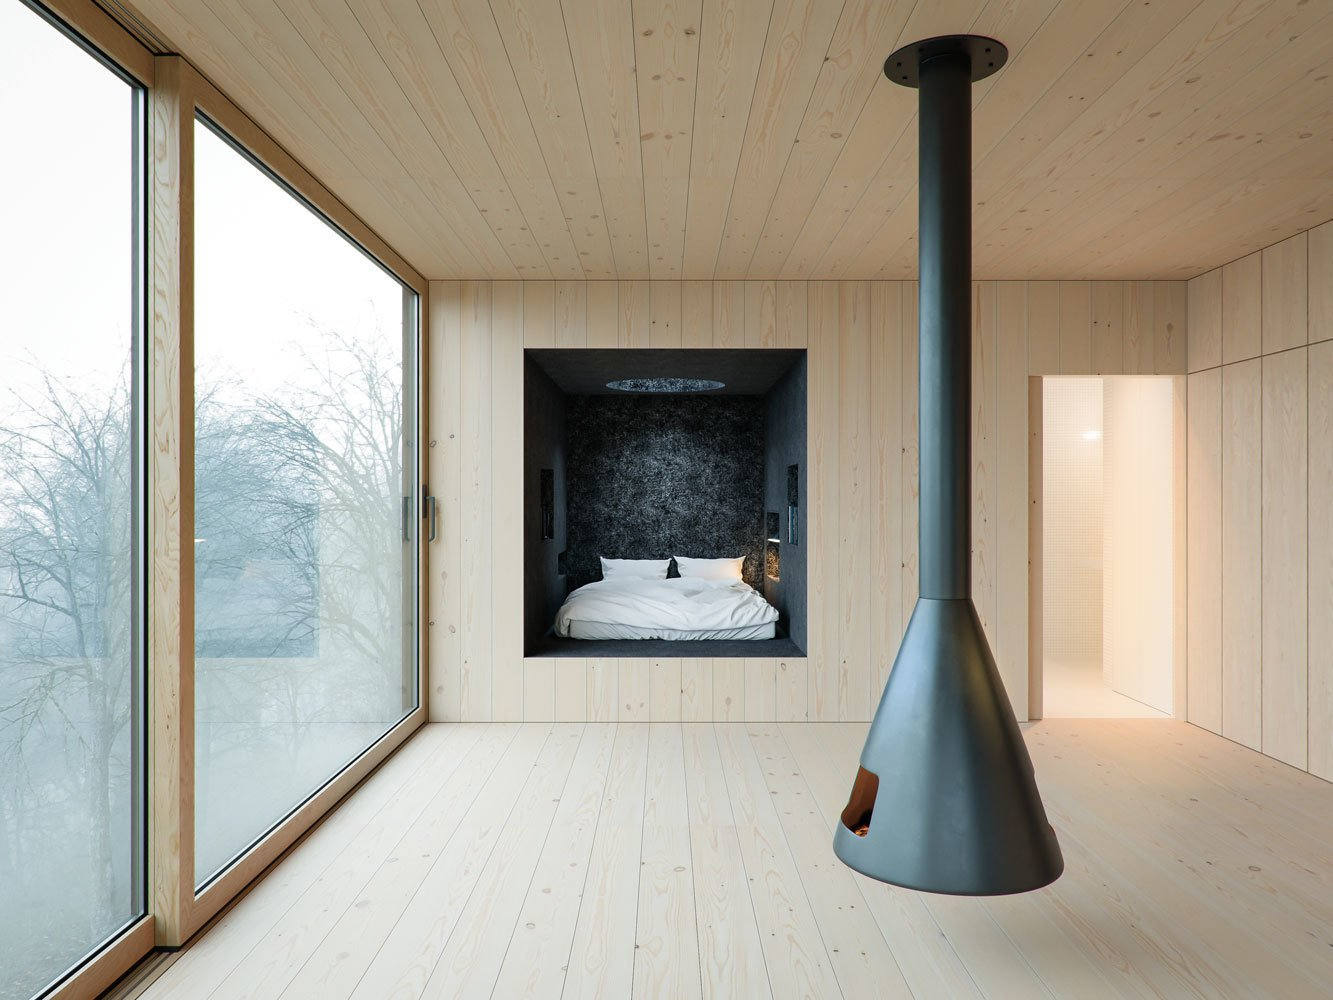 Photo 6 of 6 in Mask House by WOJR